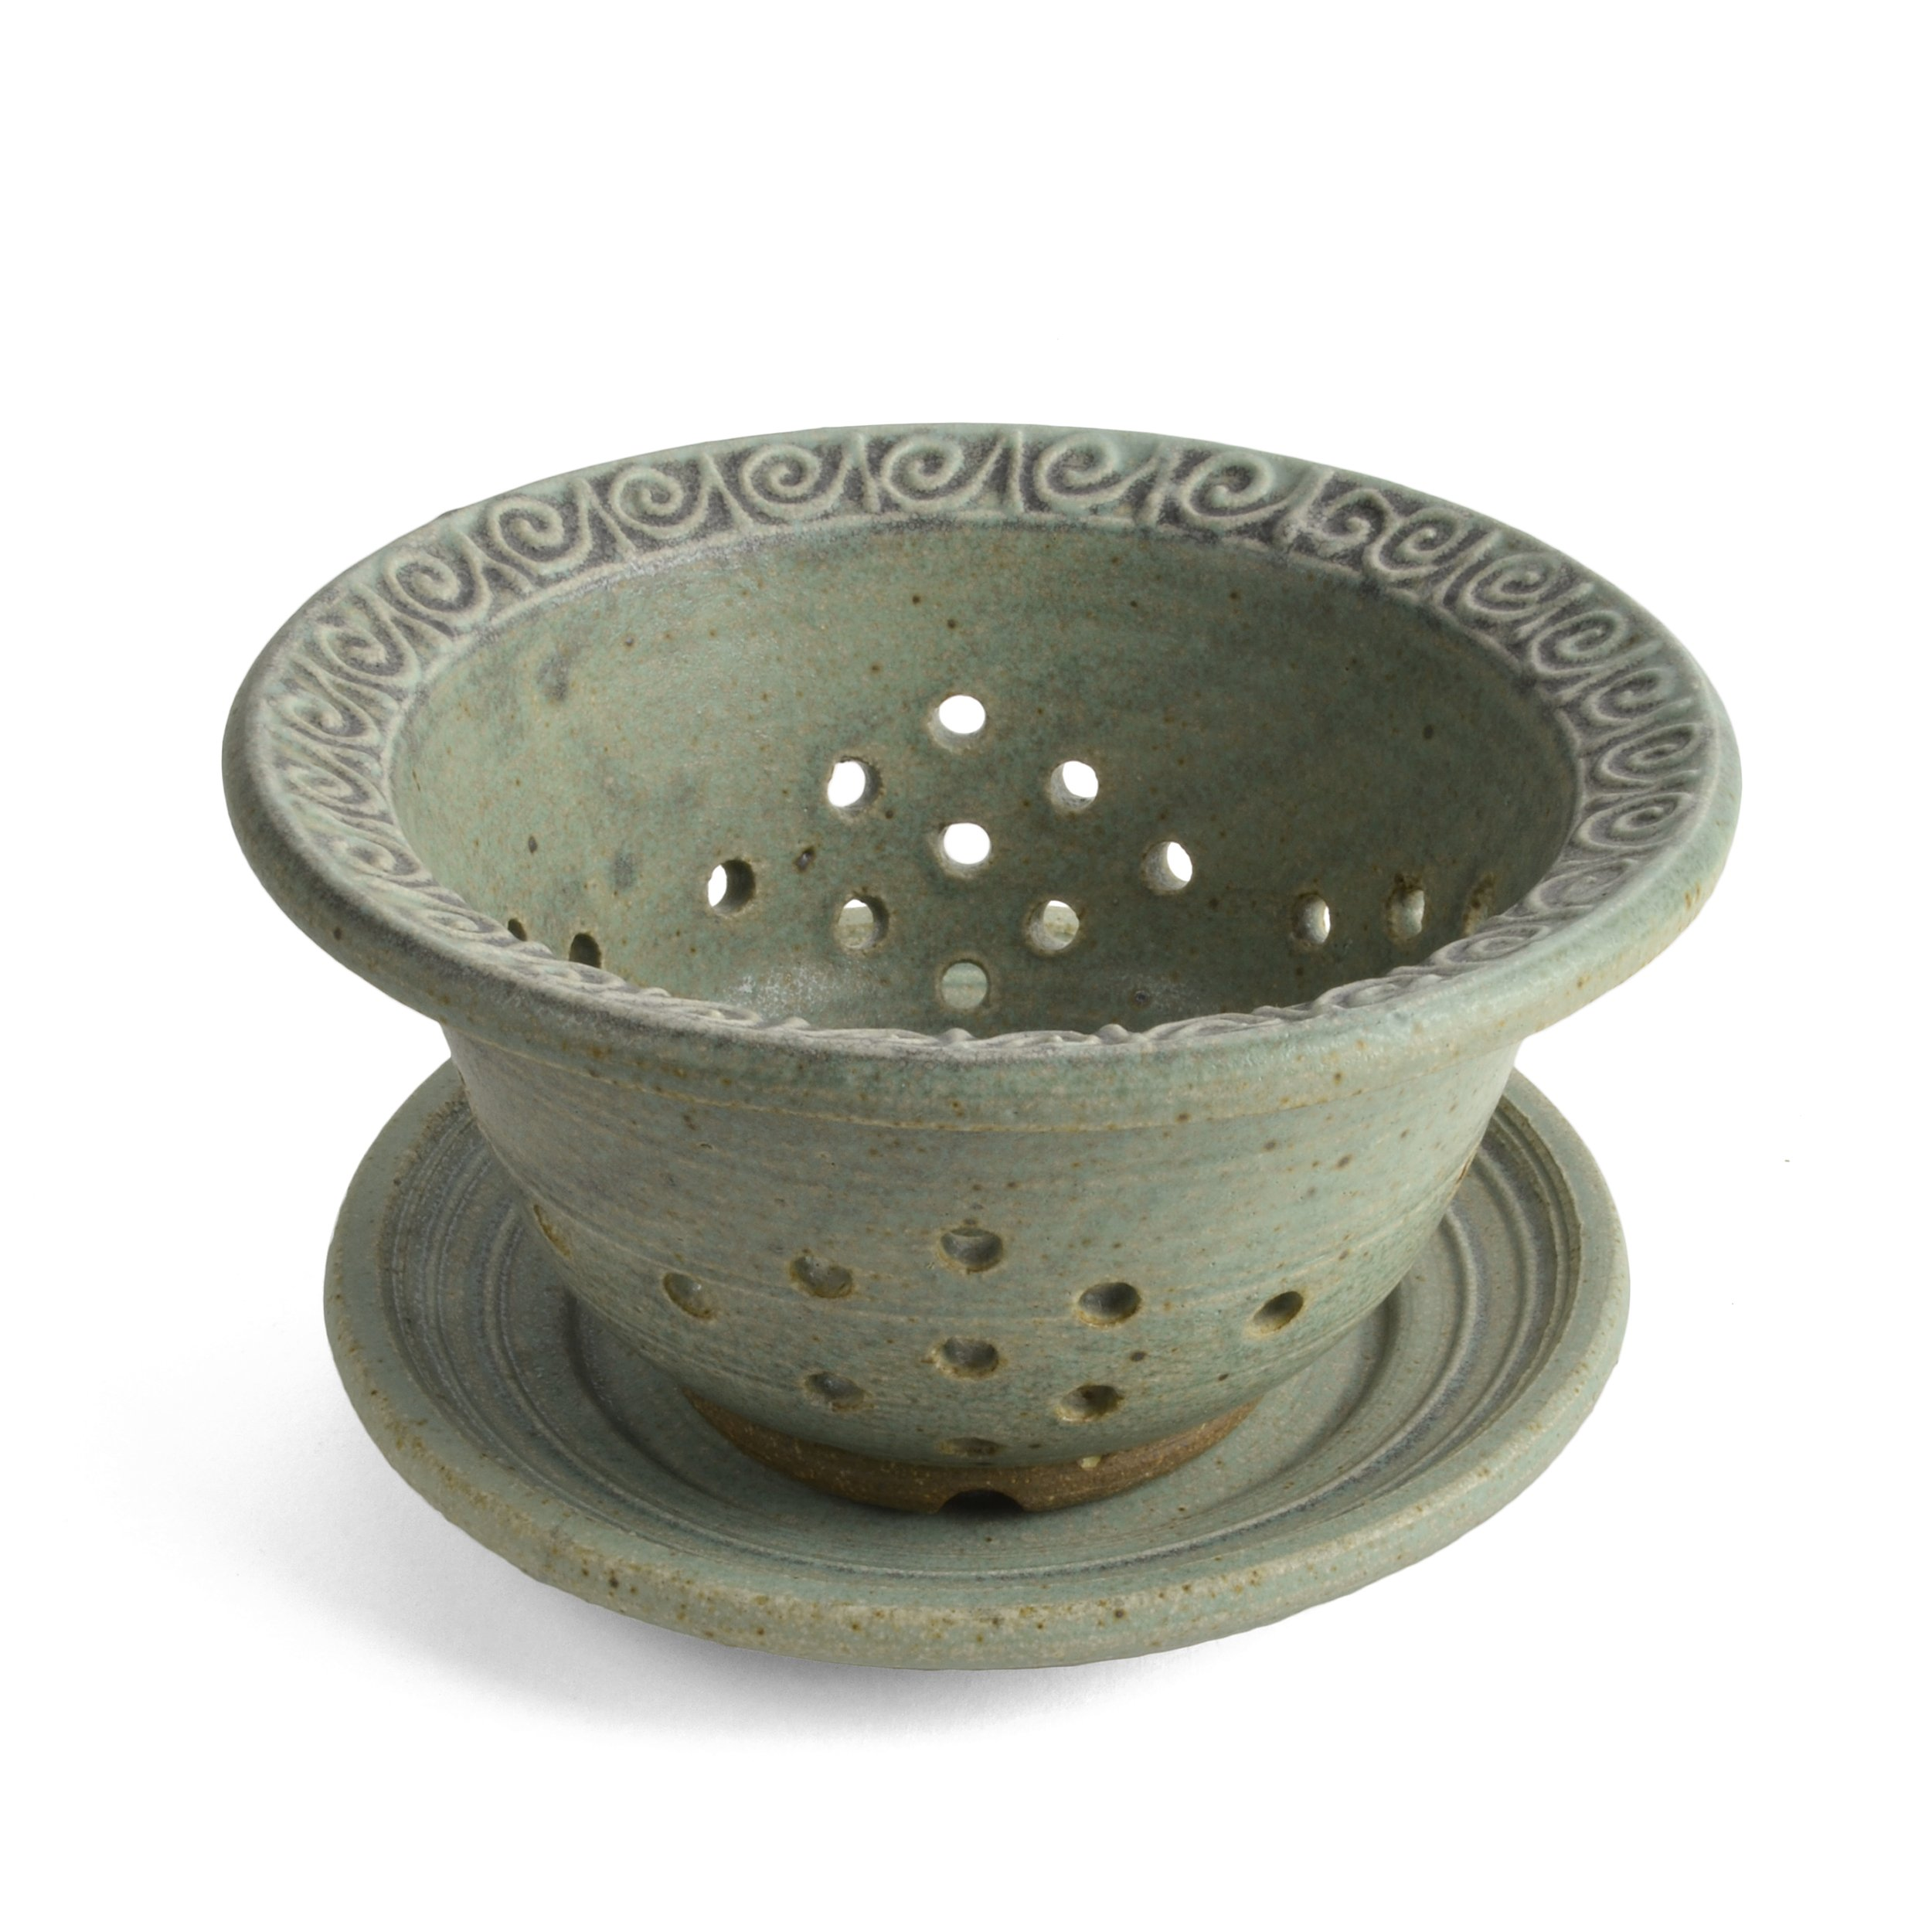 The Potters, LTD Berry Bowl, Soft Green by The Potters, LTD